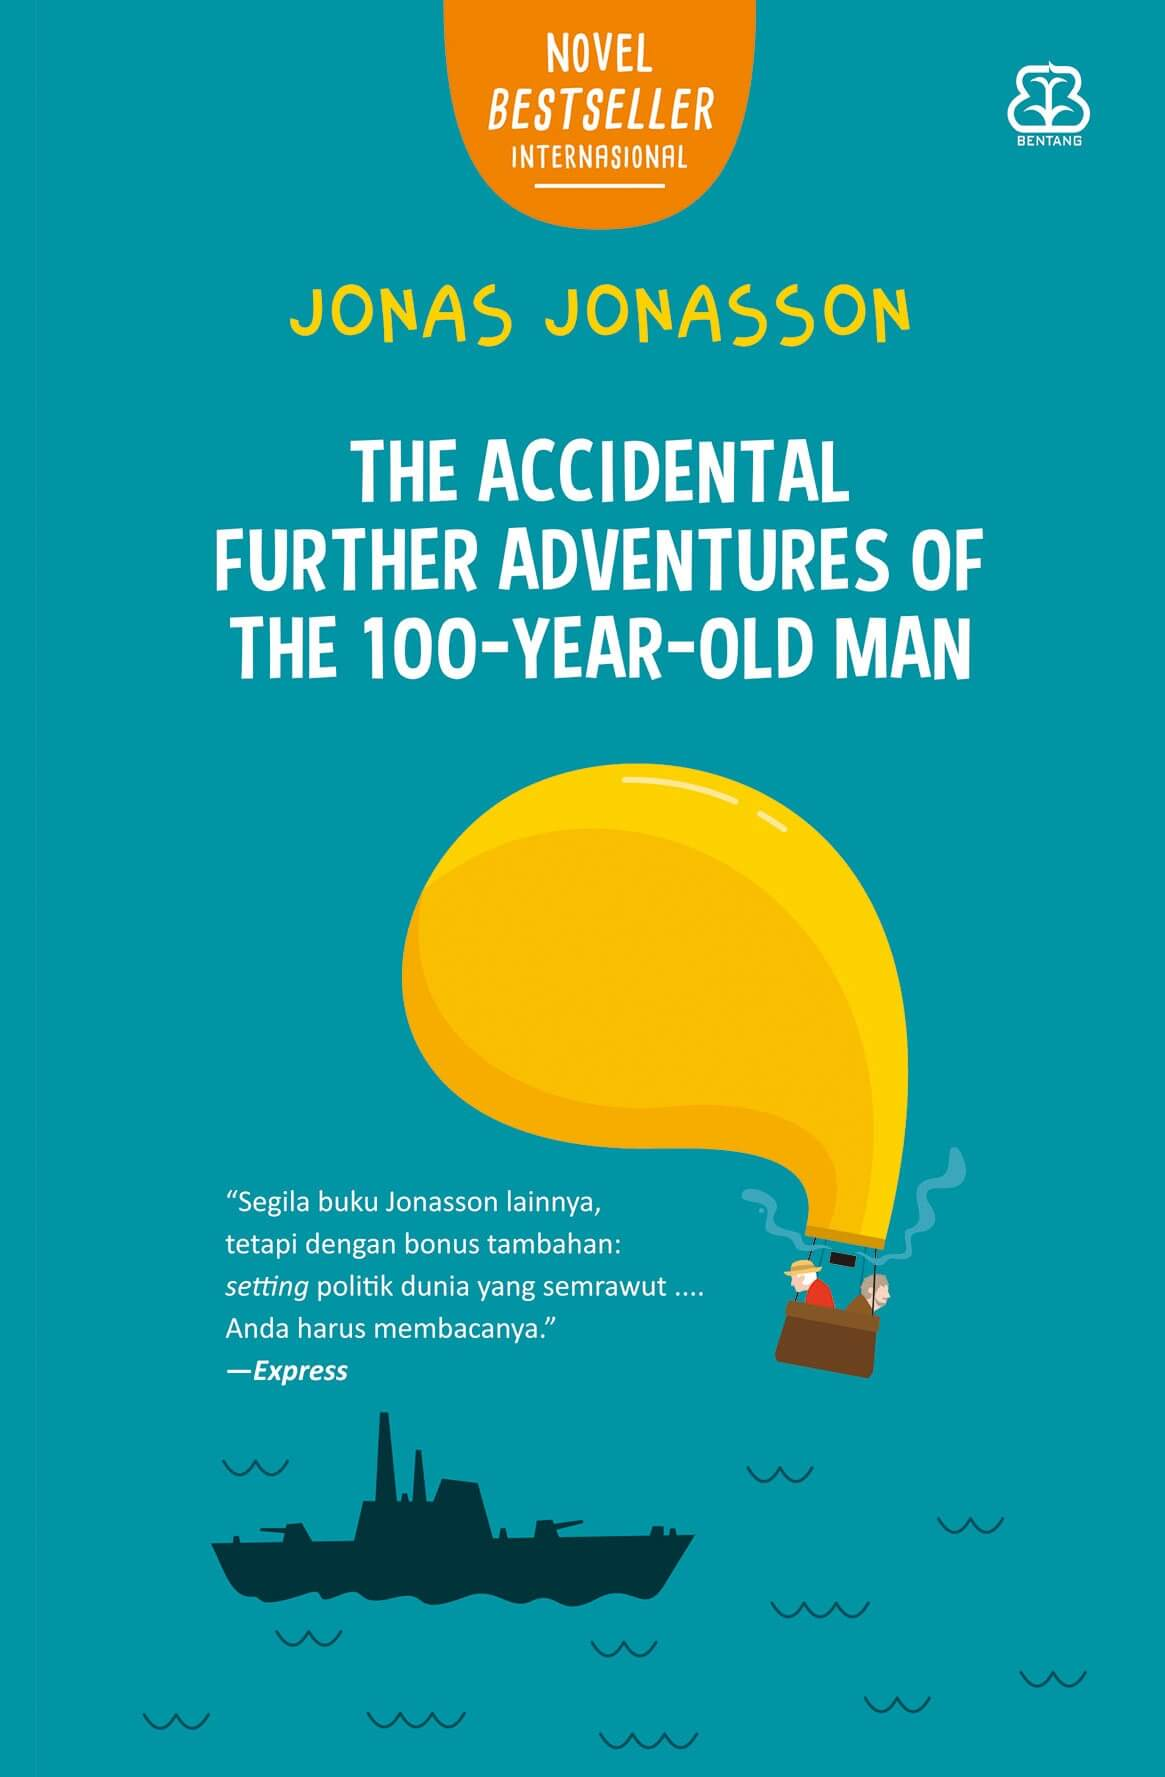 The Accidental Further Adventures Of The 100 Year-Old Man